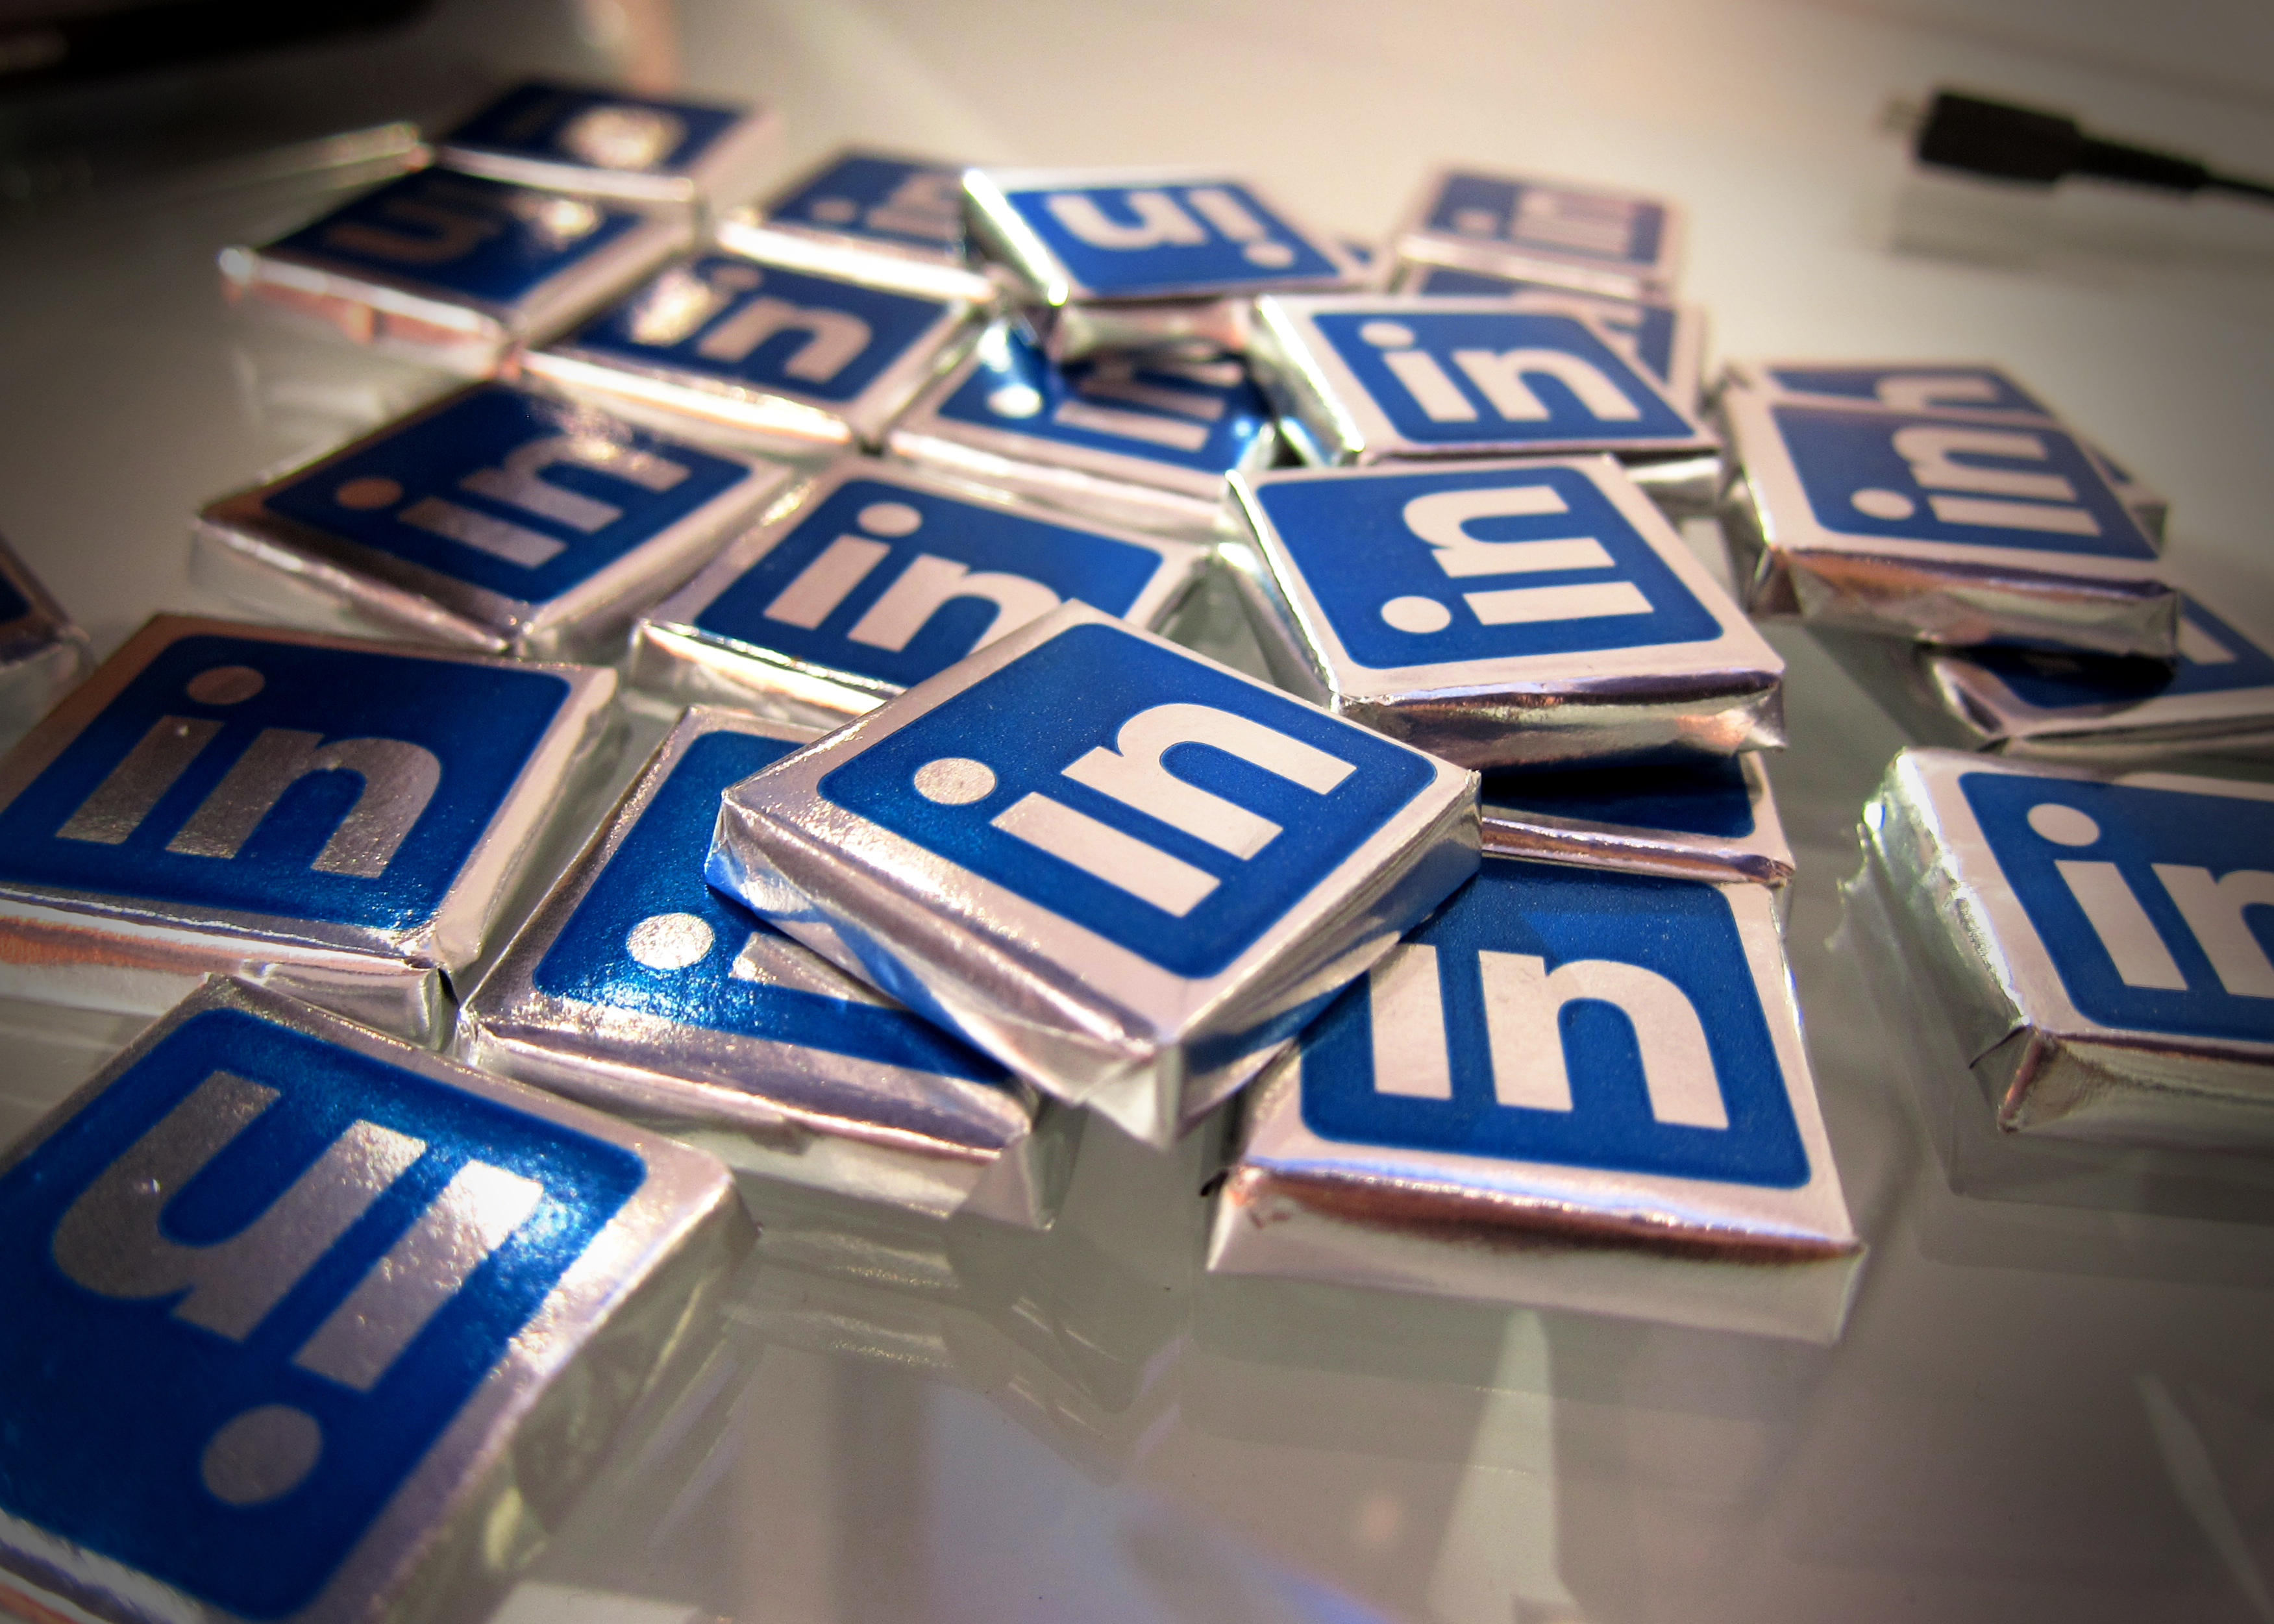 Linkedin: What to put in your professional headline